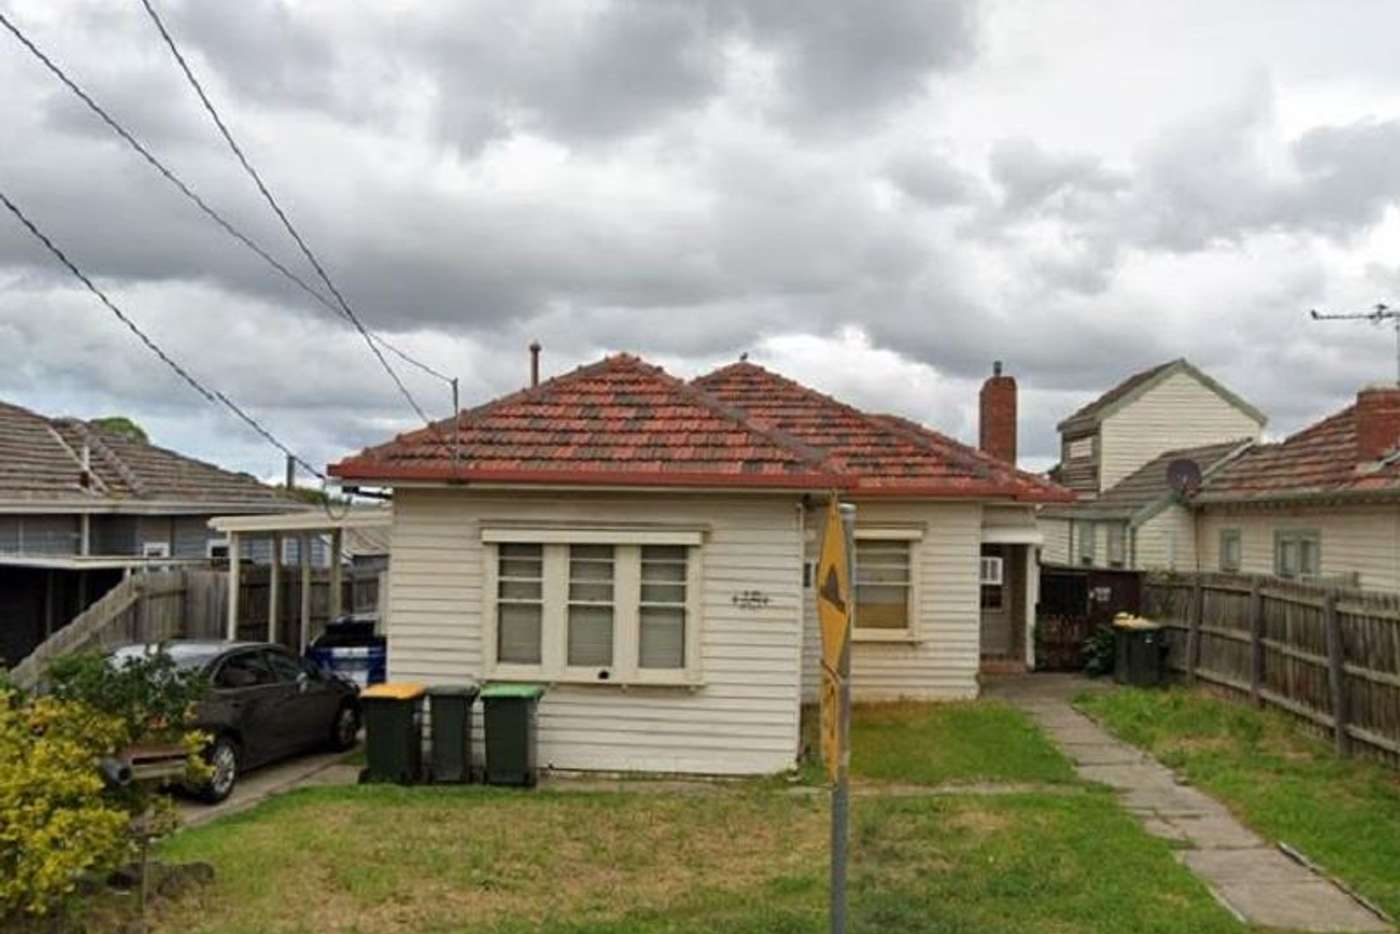 Main view of Homely house listing, 13 Chapman St, Sunshine VIC 3020